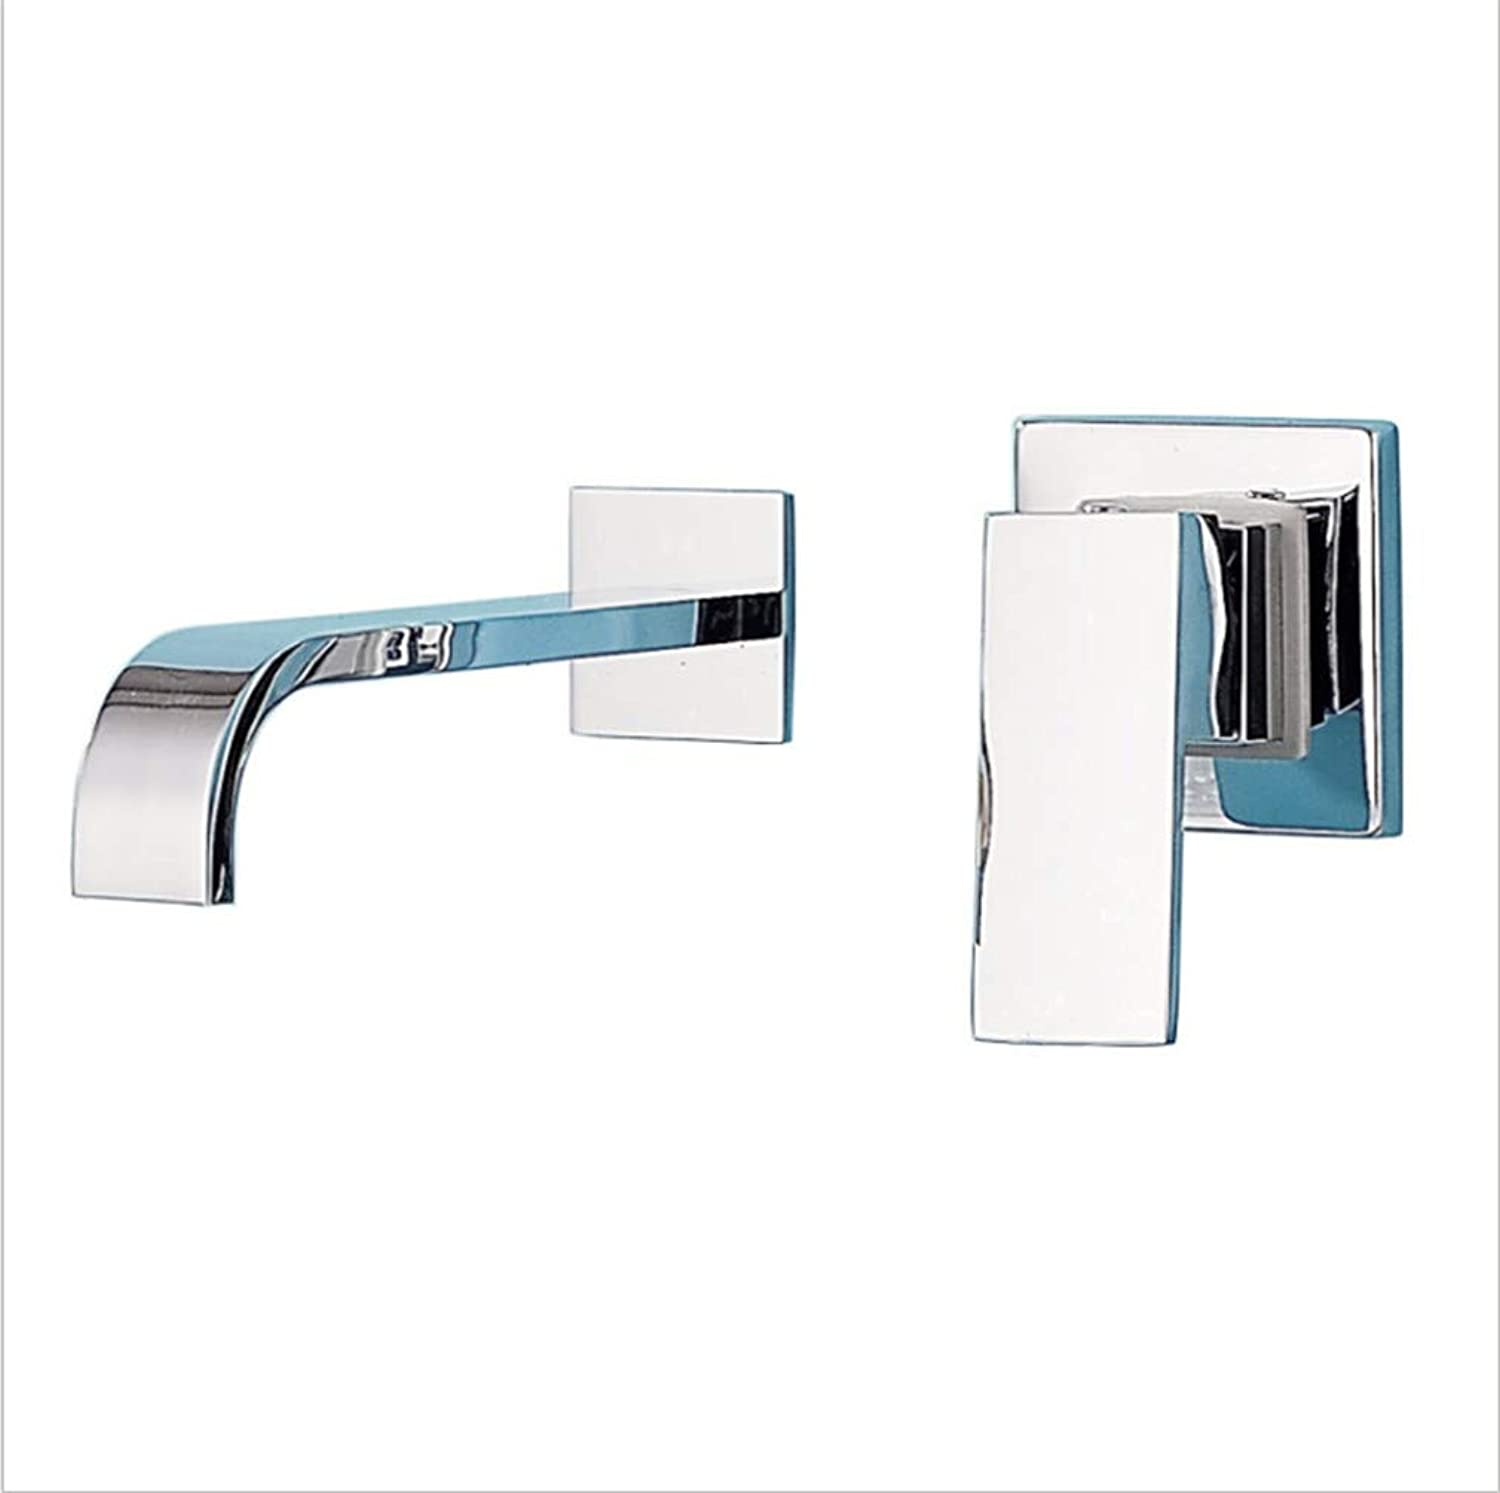 Kitchen Sink Taps Bathroom Taps Hidden Basin Faucet Hotel Bathroom Wall-Type Hot and Cold Water Table Up and Down Washstand Faucet